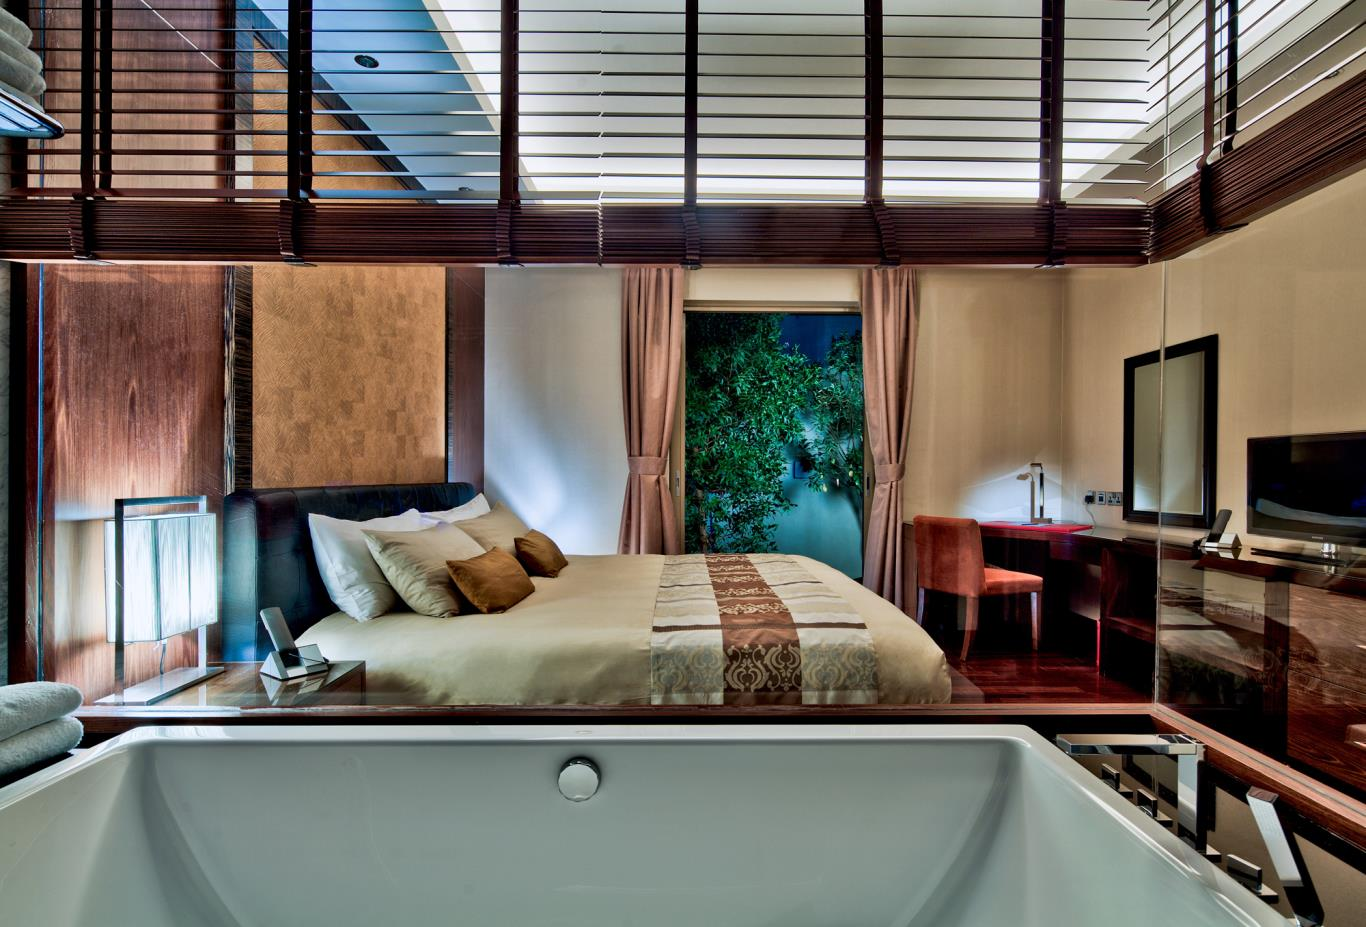 Pool-Residenc-Master-Bedroom